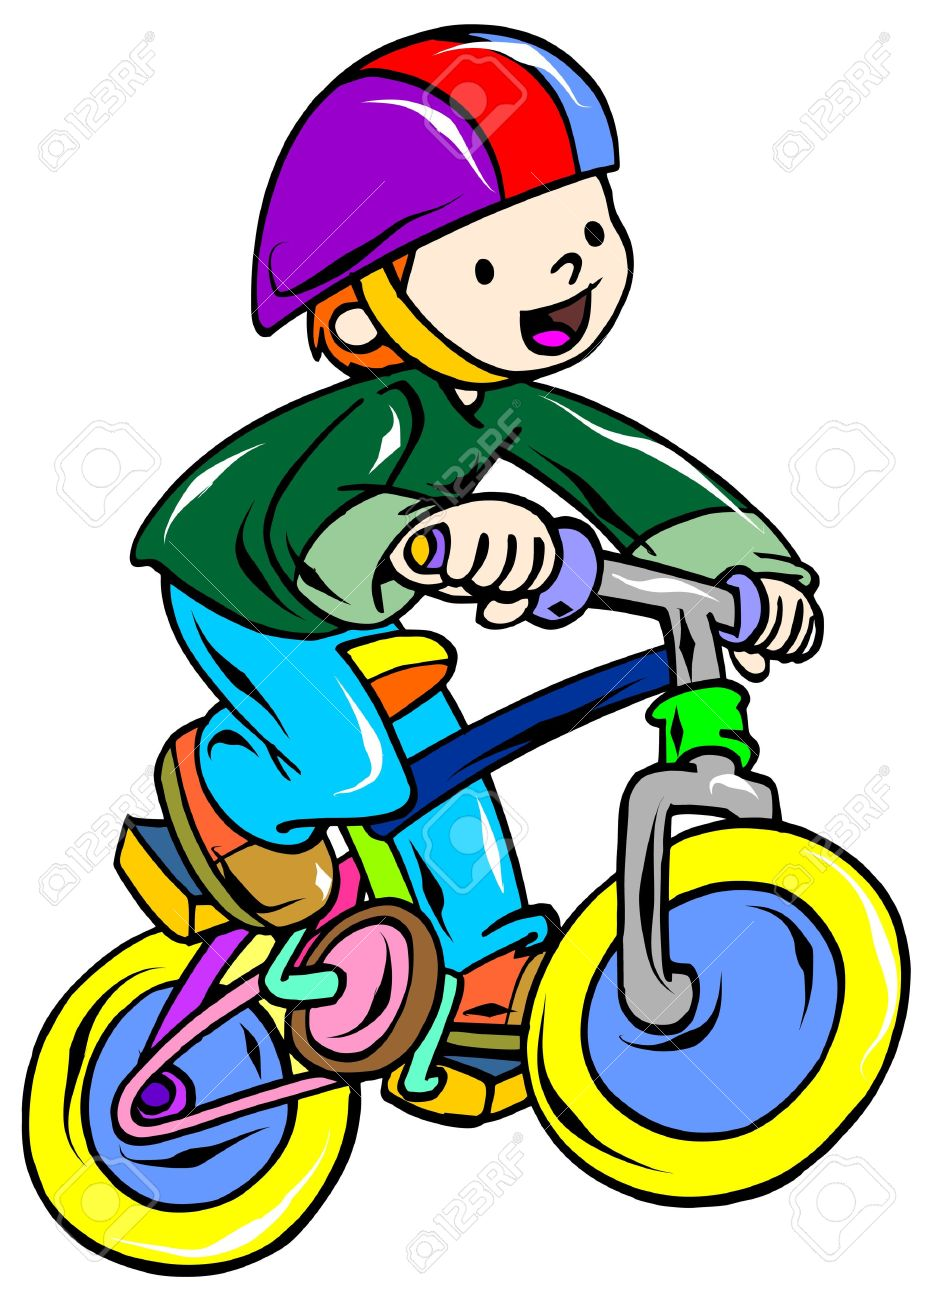 Biker clipart riding bicycle Bike a clipart riding Bicycle